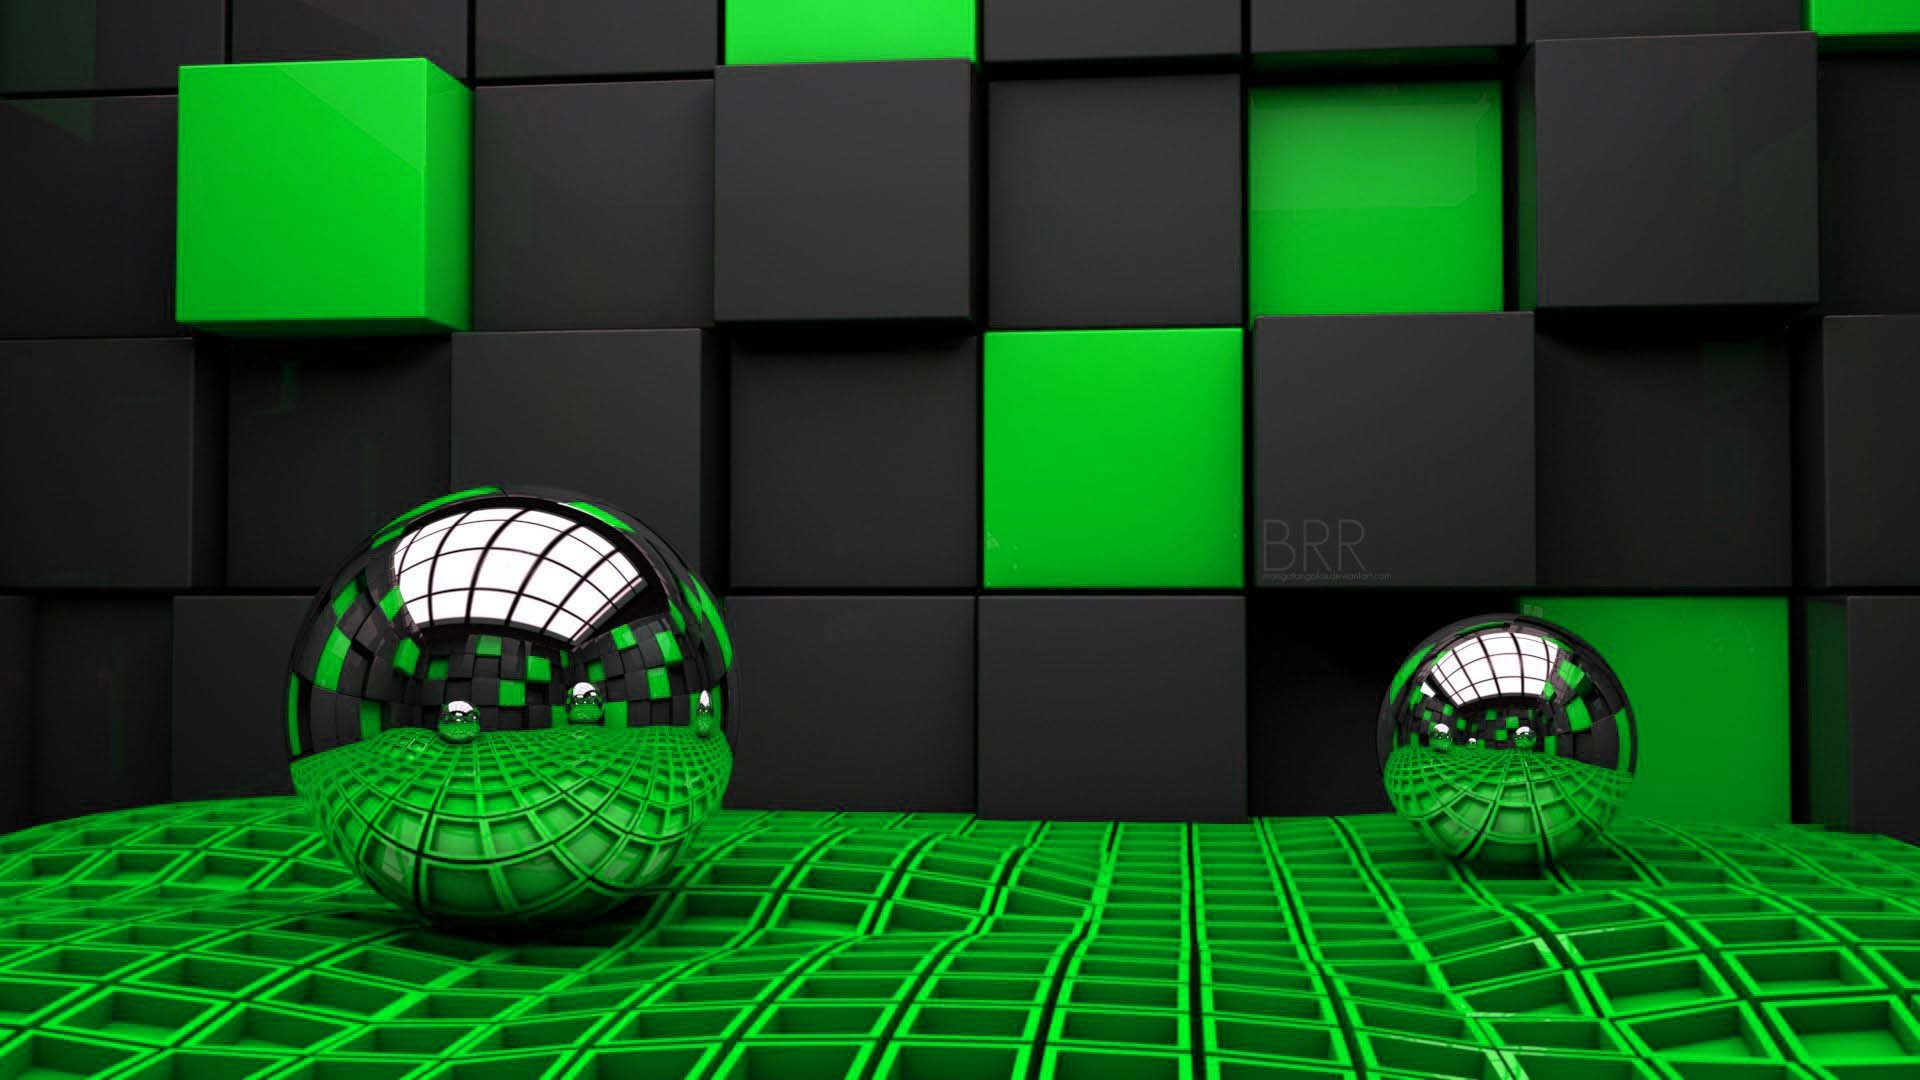 Free 3d wallpapers for laptop wallpapersafari for 3d wallpapers for home wall in pakistan